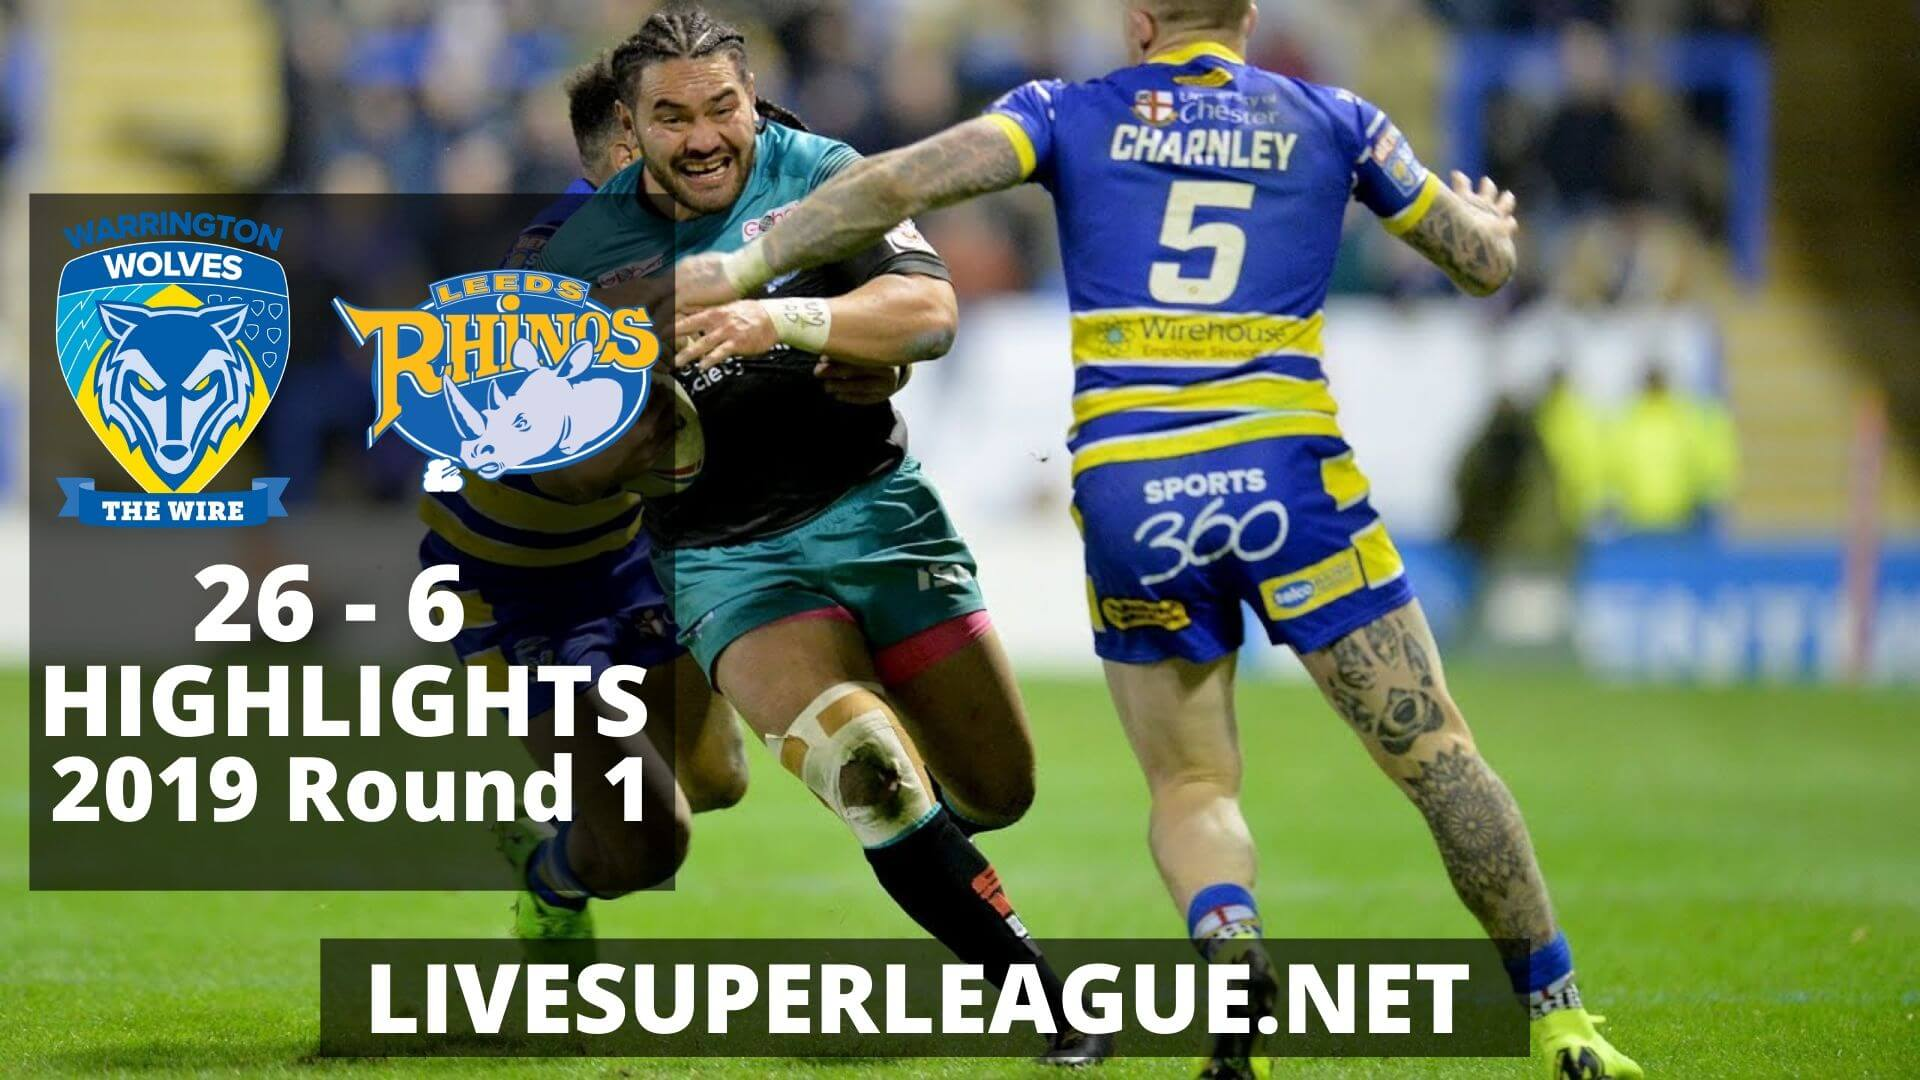 Warrington Wolves Vs Leeds Rhinos Highlights 2019 Round 1